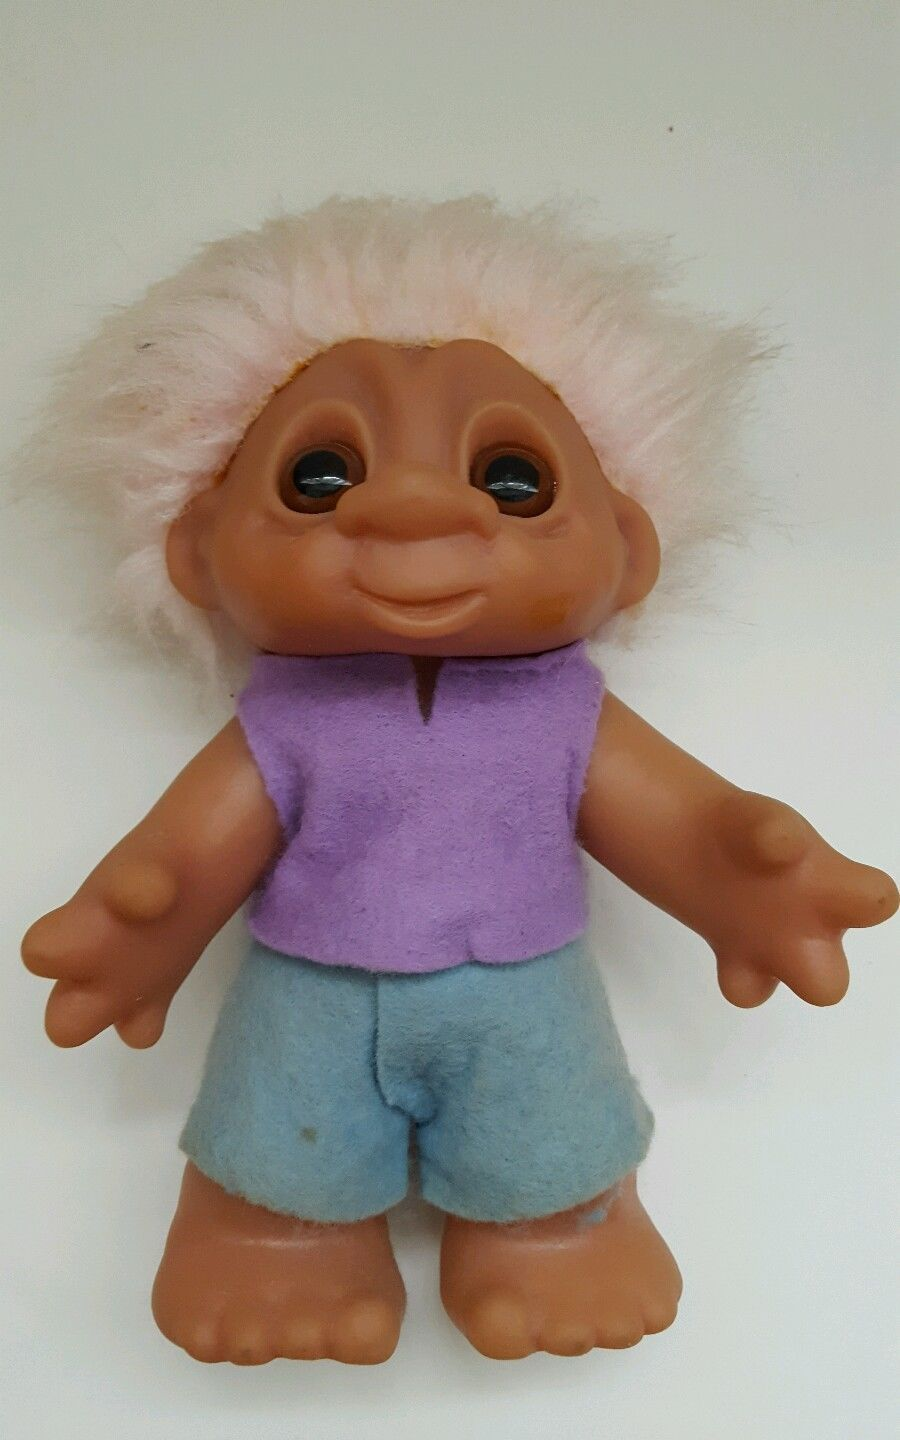 Vintage 3 DAM NORFIN TROLL Dolls Figures with Felt Satin clothes Made in Denmark